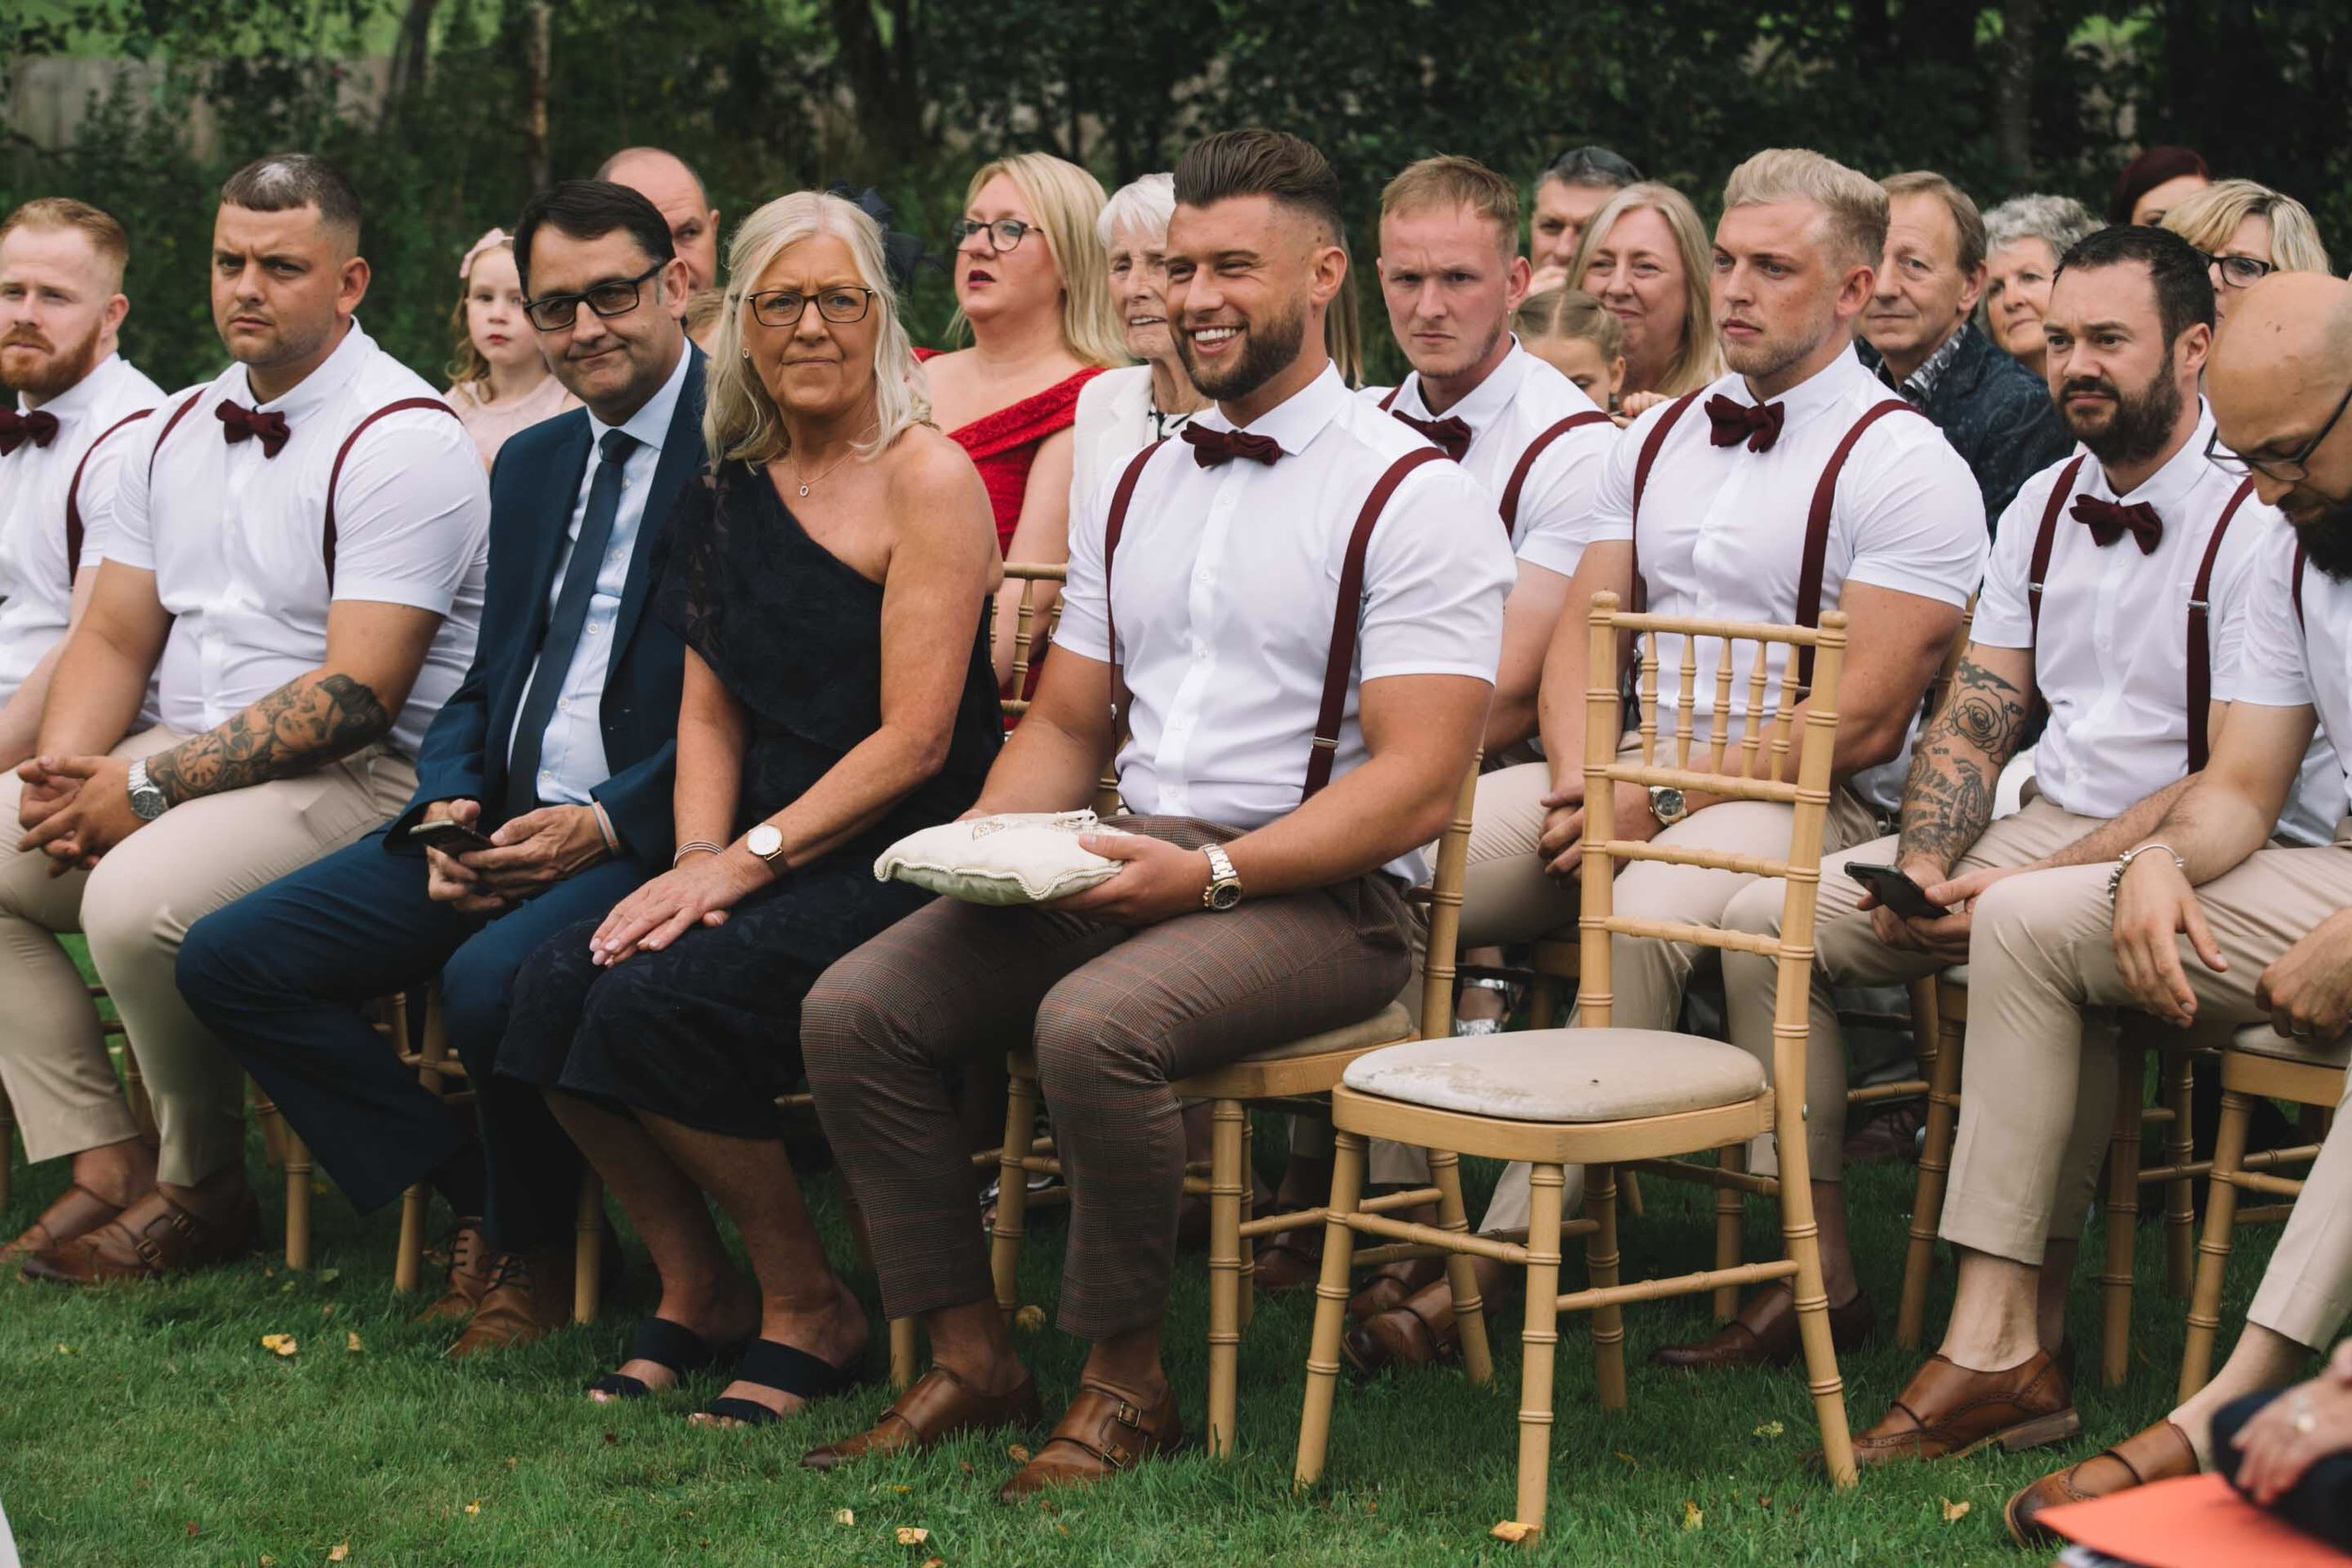 """""""Leanne and Josh will now exchange the wedding rings that you have all held during the ceremony. These rings hold all of your wishes, love and support for Josh and Leanne. Zak I really hope those rings have made their way back to you?!"""" (Zak looks confident!)"""